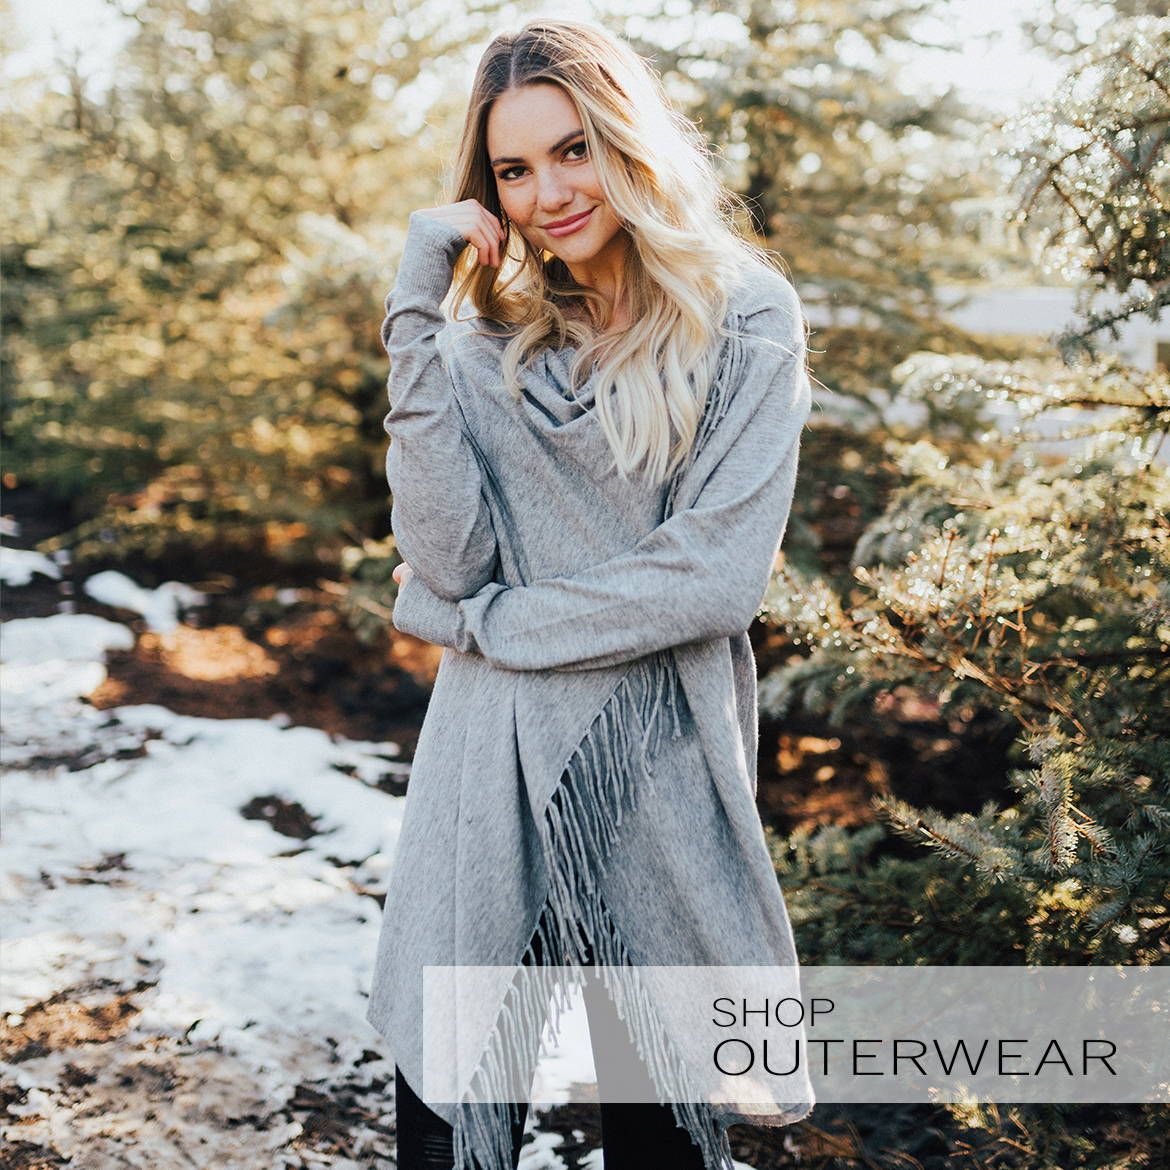 Shop outerwear, boutique winter clothes, online boutiques